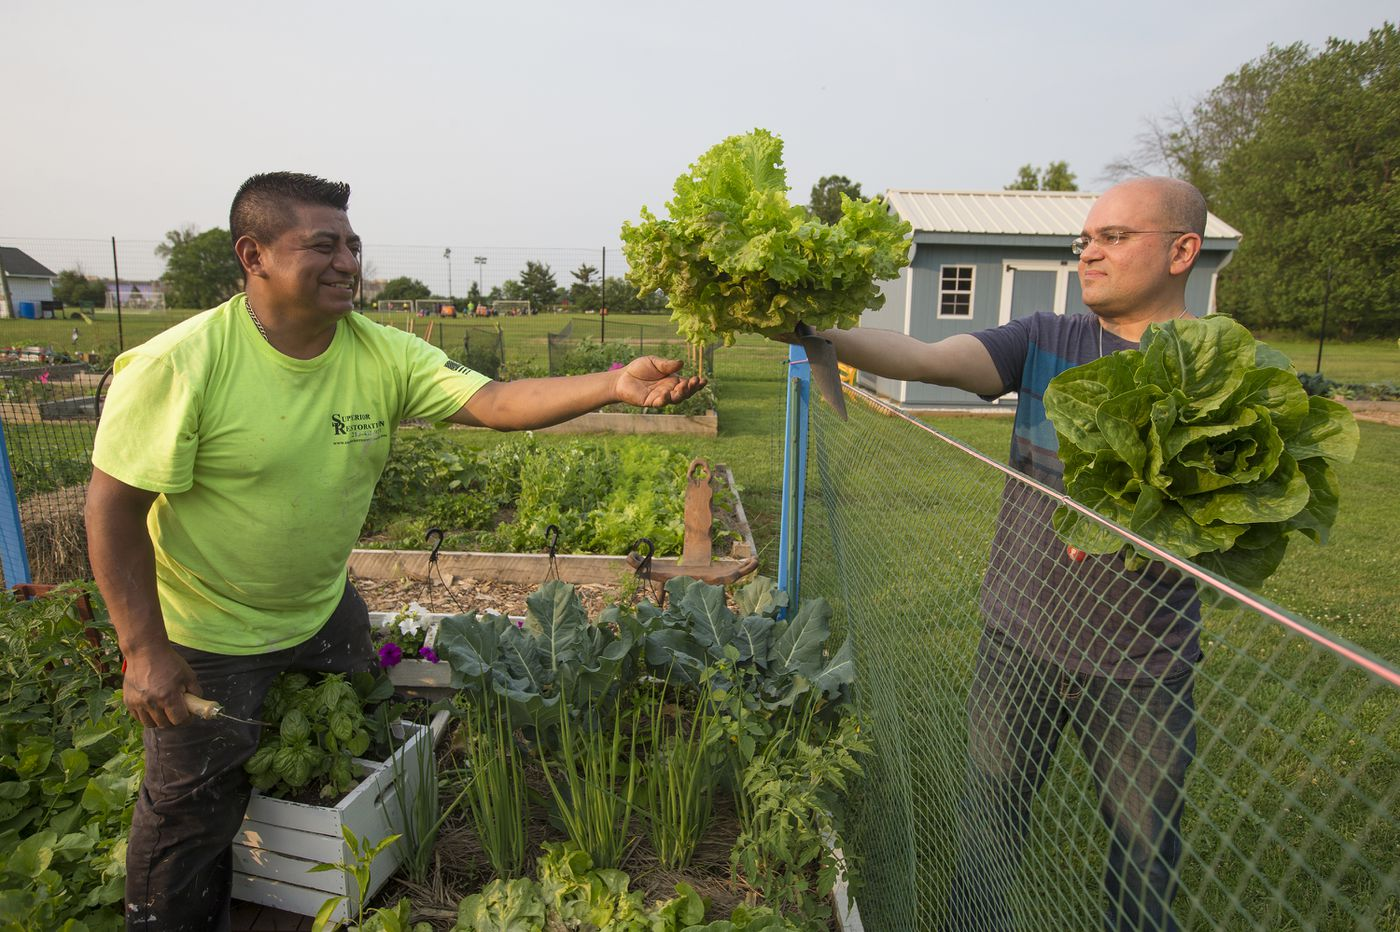 New immigrant-run community garden plants hope for families in Bucks County